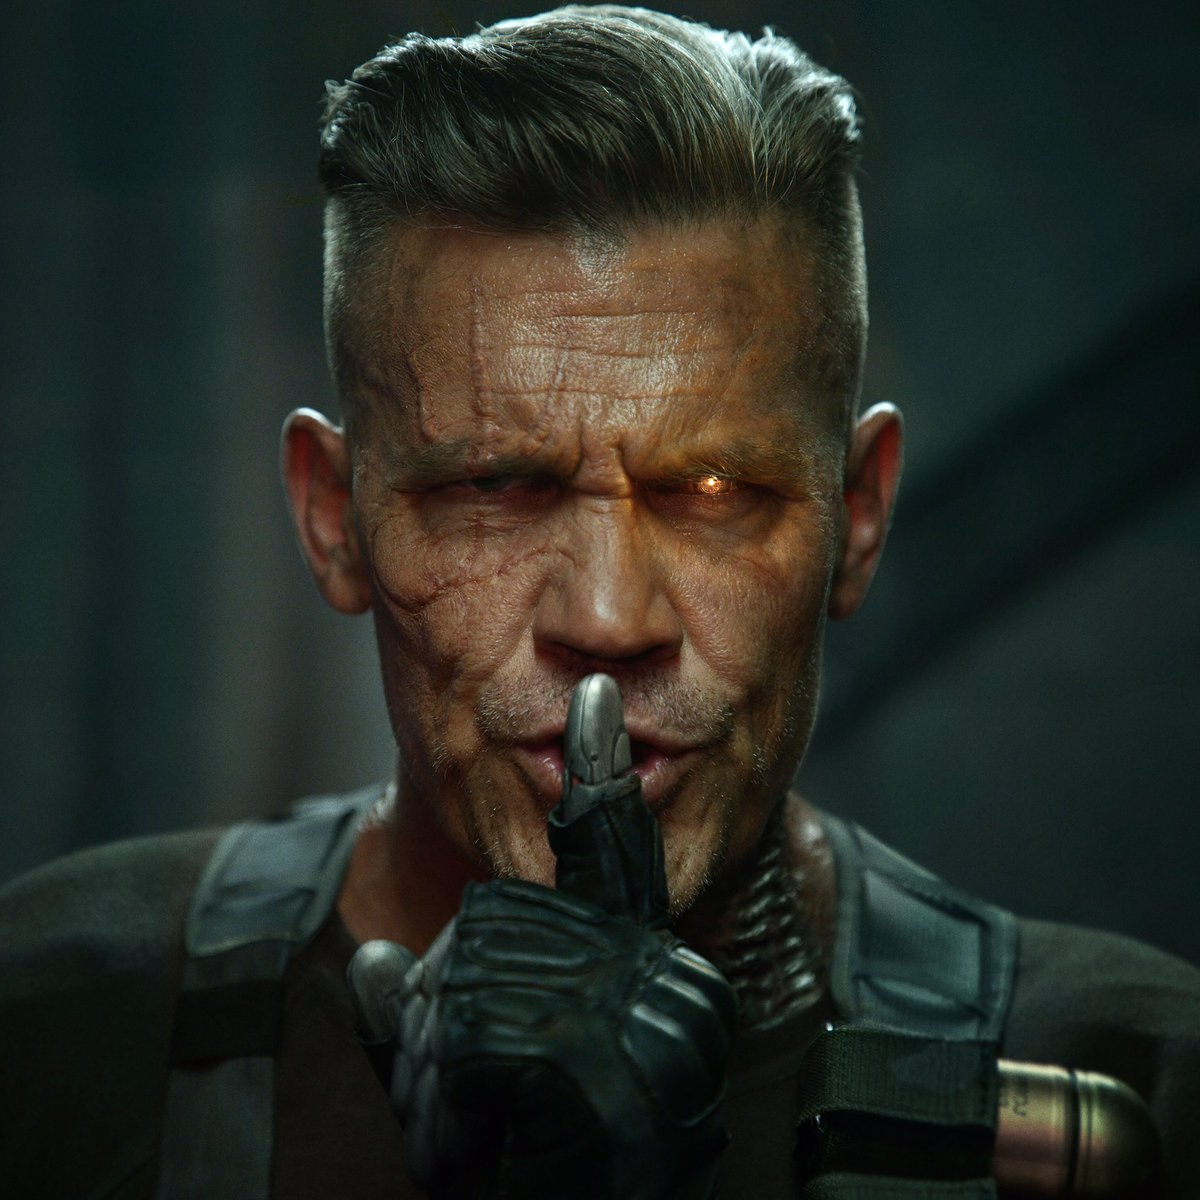 'Deadpool 2' Reveals First Official Photos of Cable & They're Pretty Badass